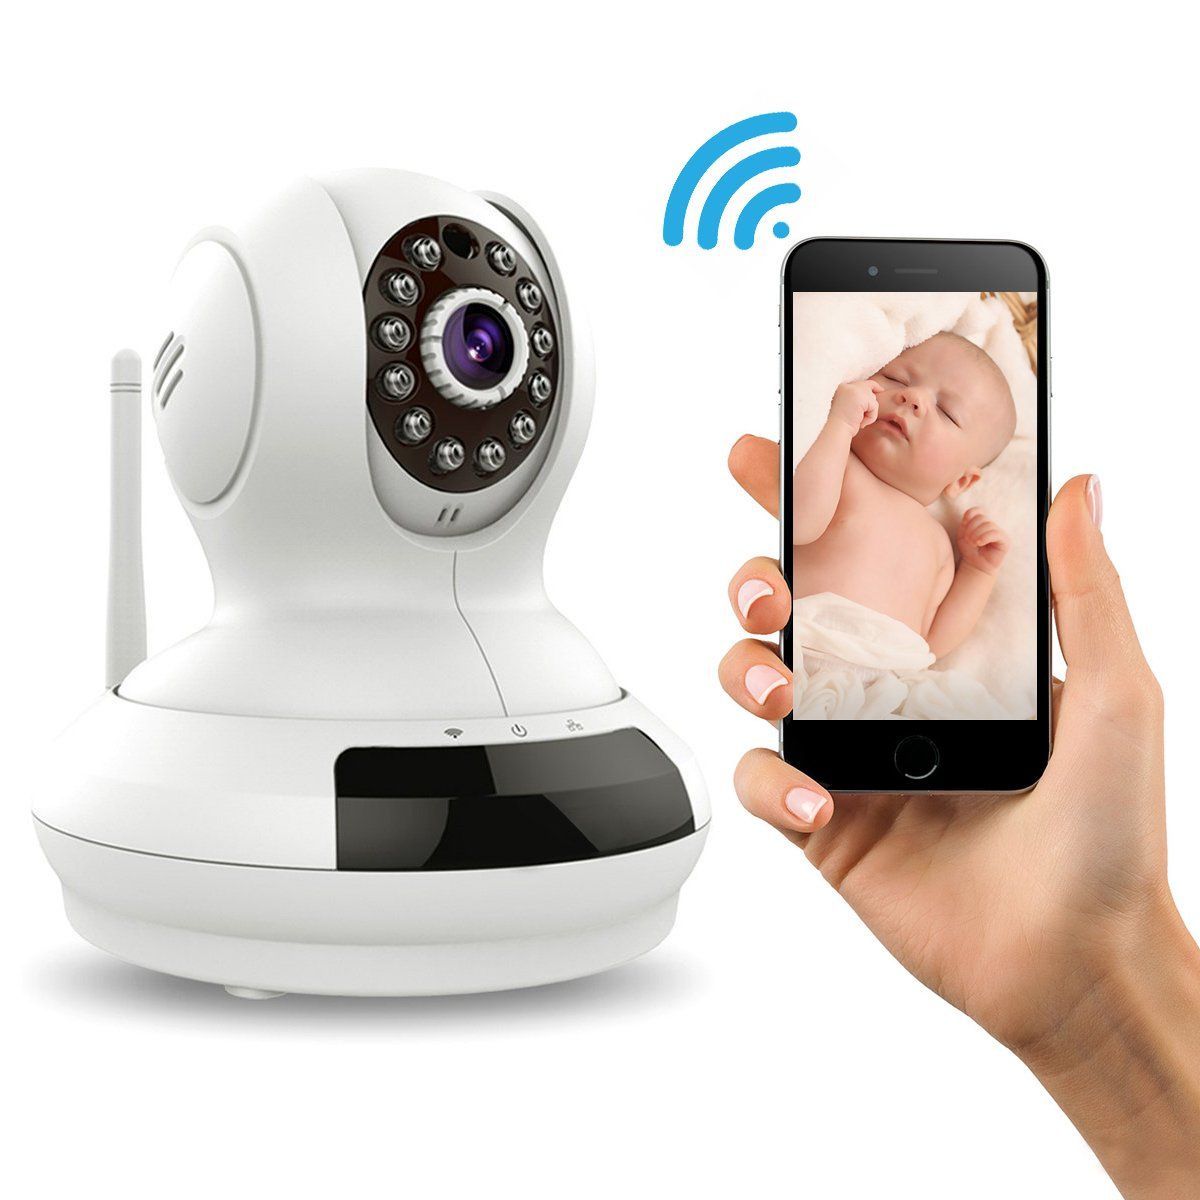 Spy Tec WiFi Wireless Surveillance Camera IP Camera Nanny Cam with Pan Tilt Zoom Motion Detect Two Way Audio Night Vision Remote Control 2.4G WiFi for Baby Monitor and Wireless Security Camera